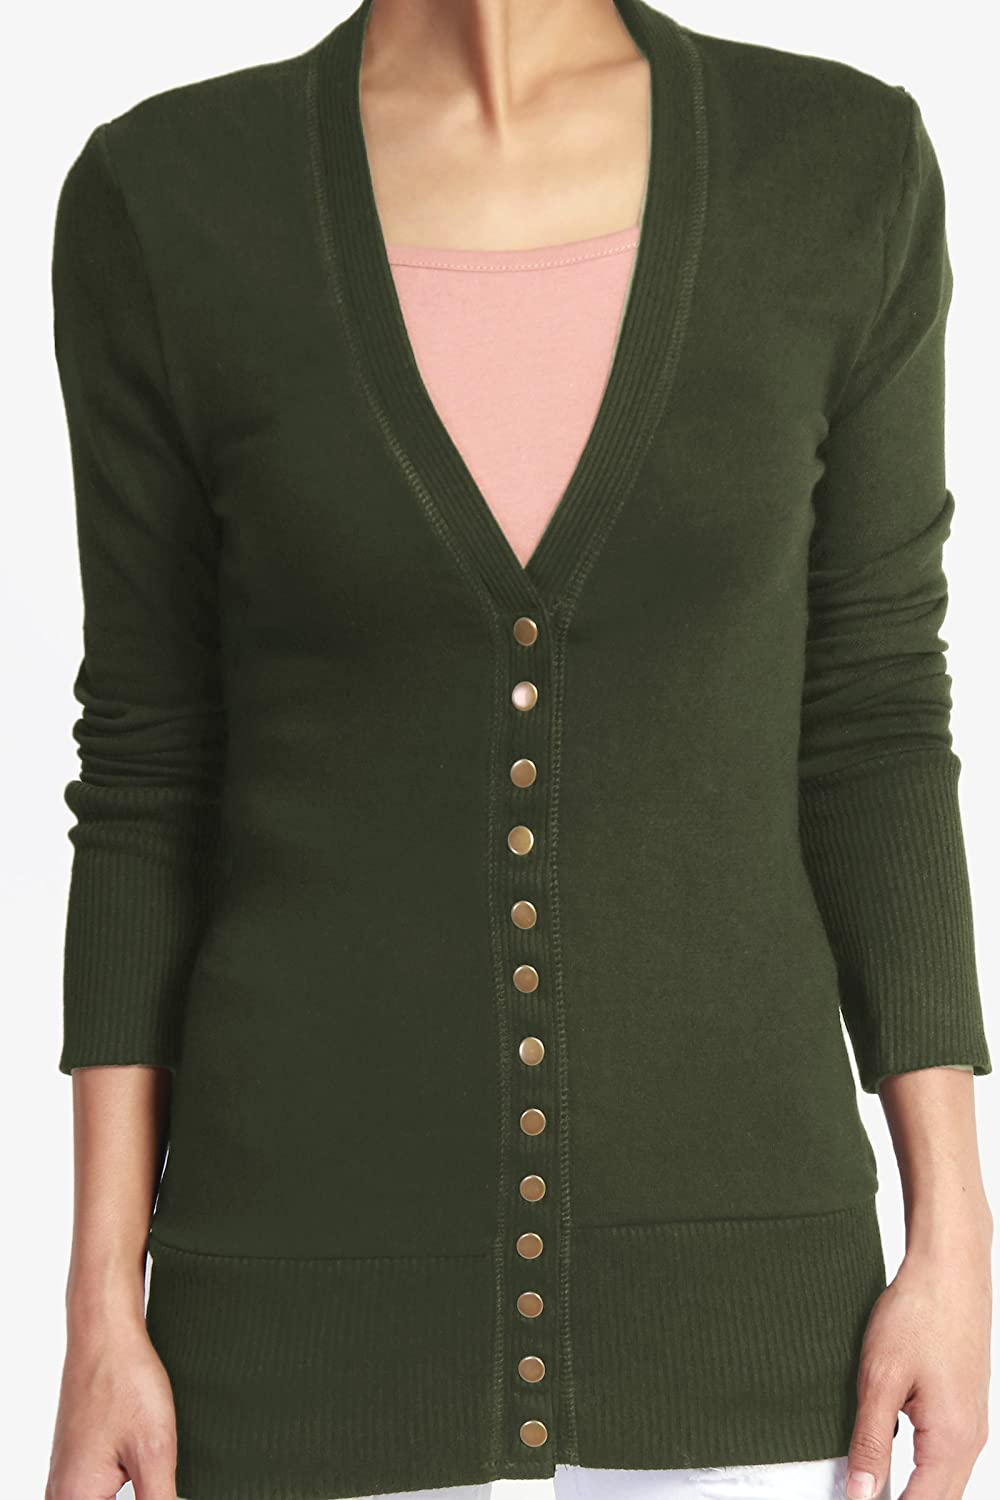 TheMogan Classic Snap Button Front V-Neck Long Sleeve Knit Cardigan   Amazon.ca  Clothing   Accessories 685391476